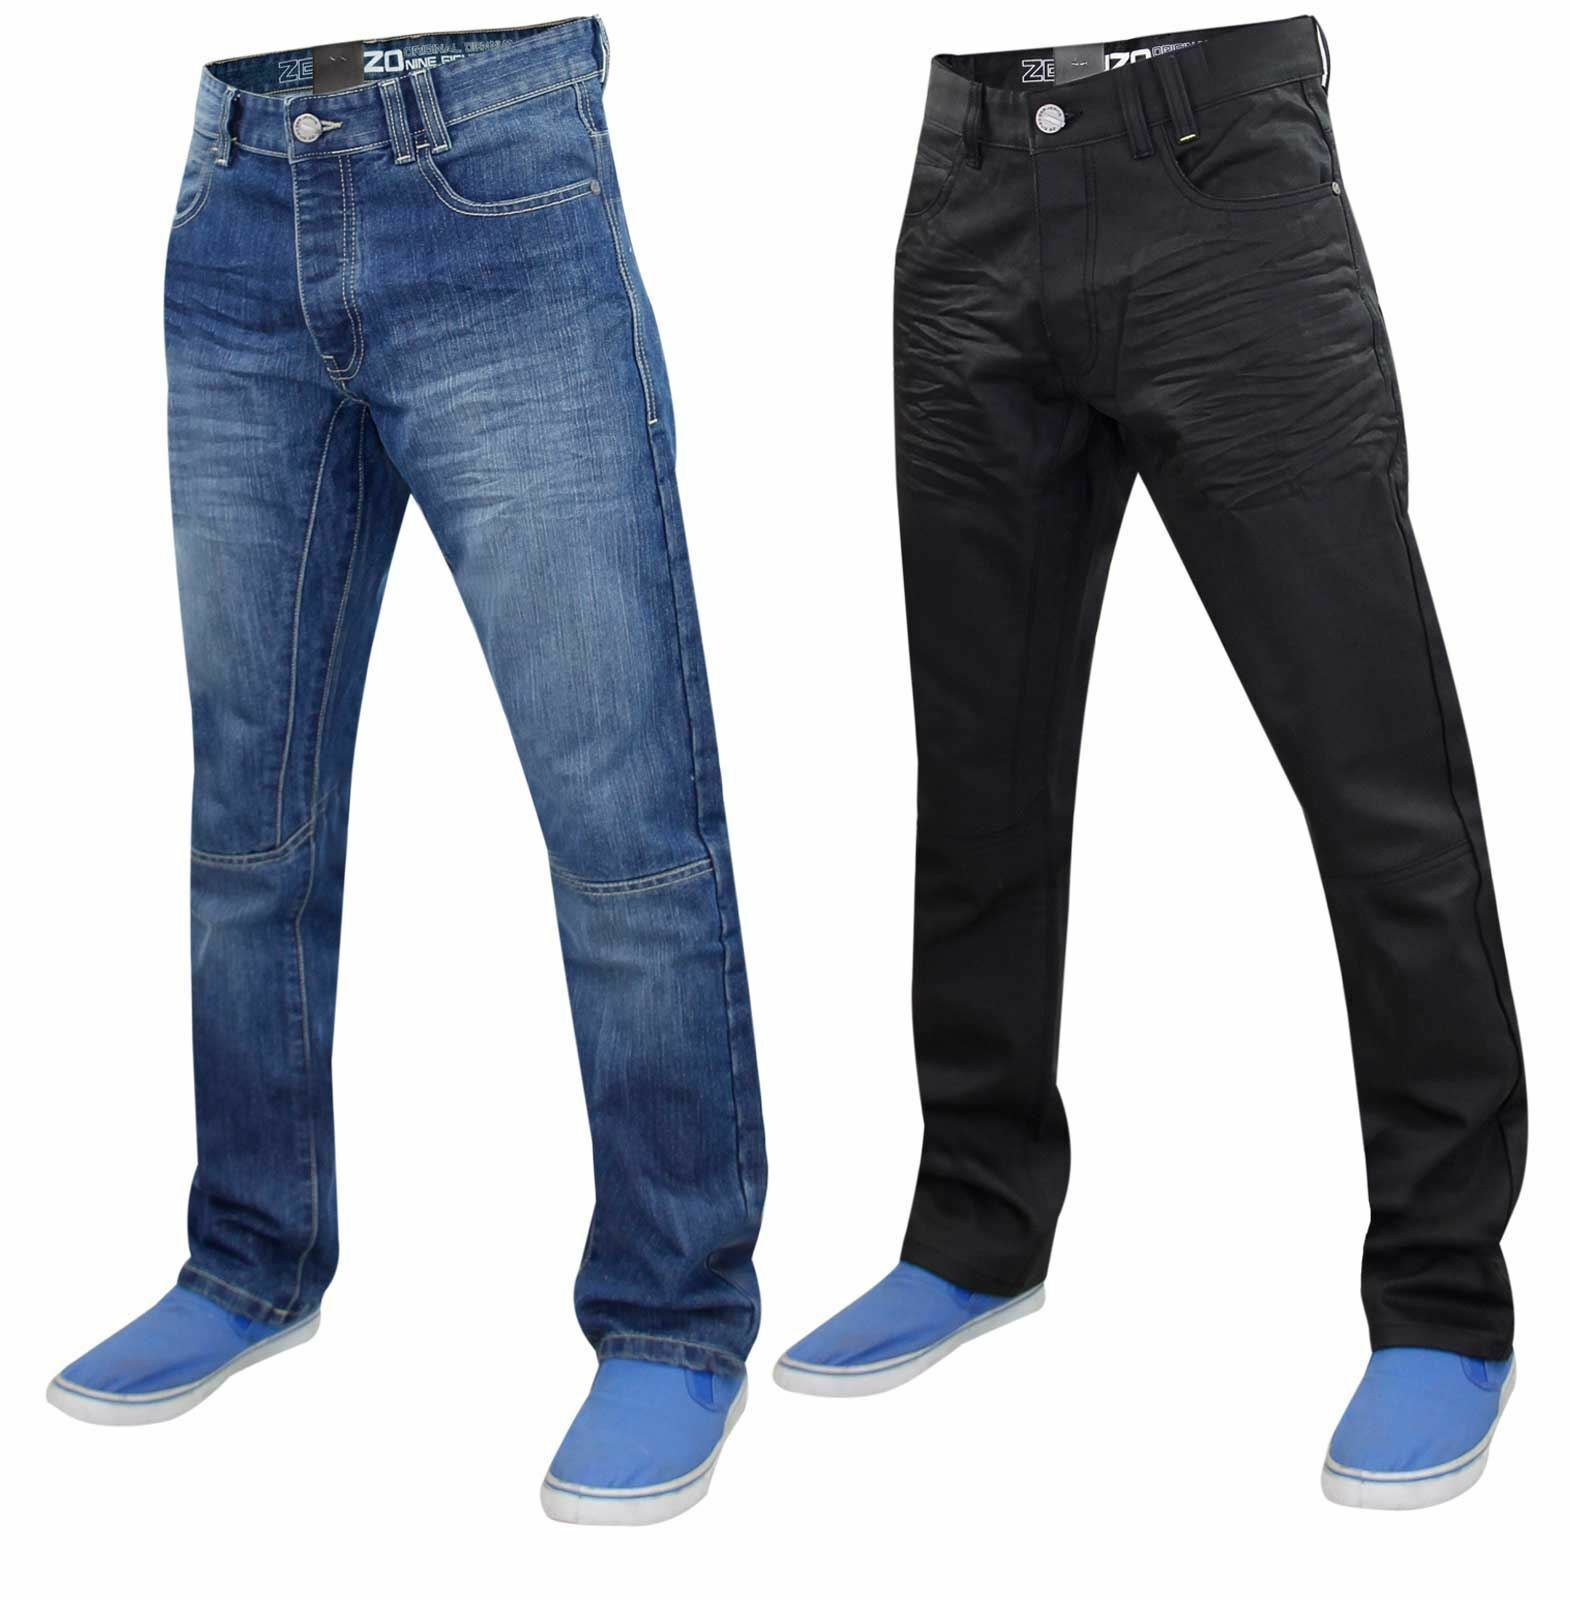 Da Uomo Crosshatch Marca Designer Jeans Stretch Denim NUOVI slim fit 5 Tasche Jeans